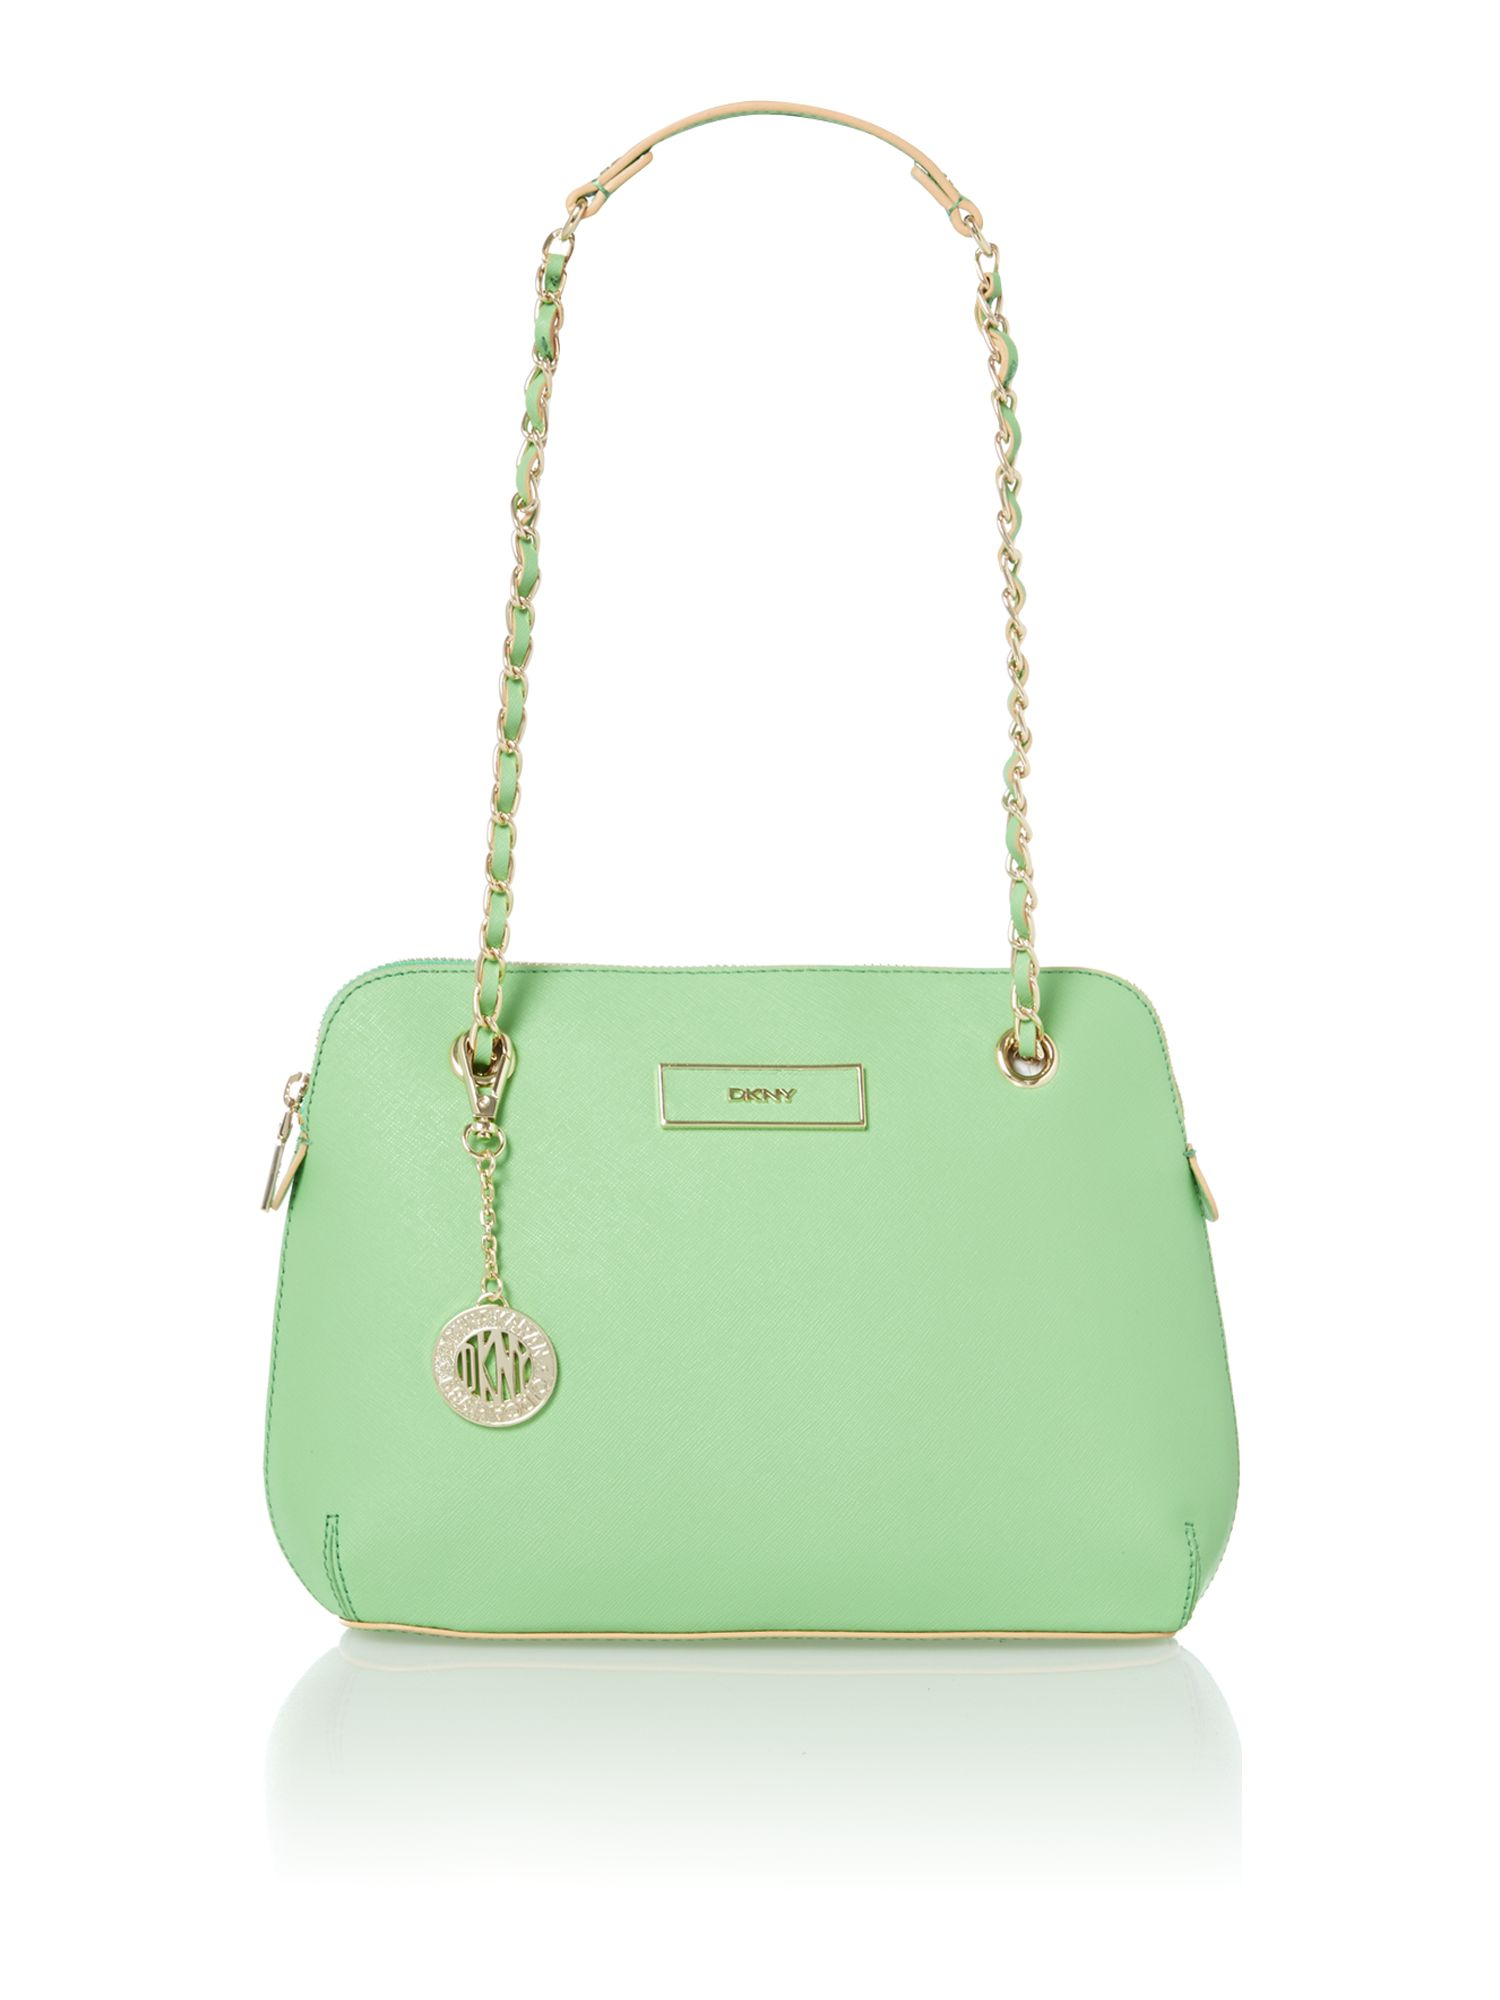 Saffiano green medium crossbody bag